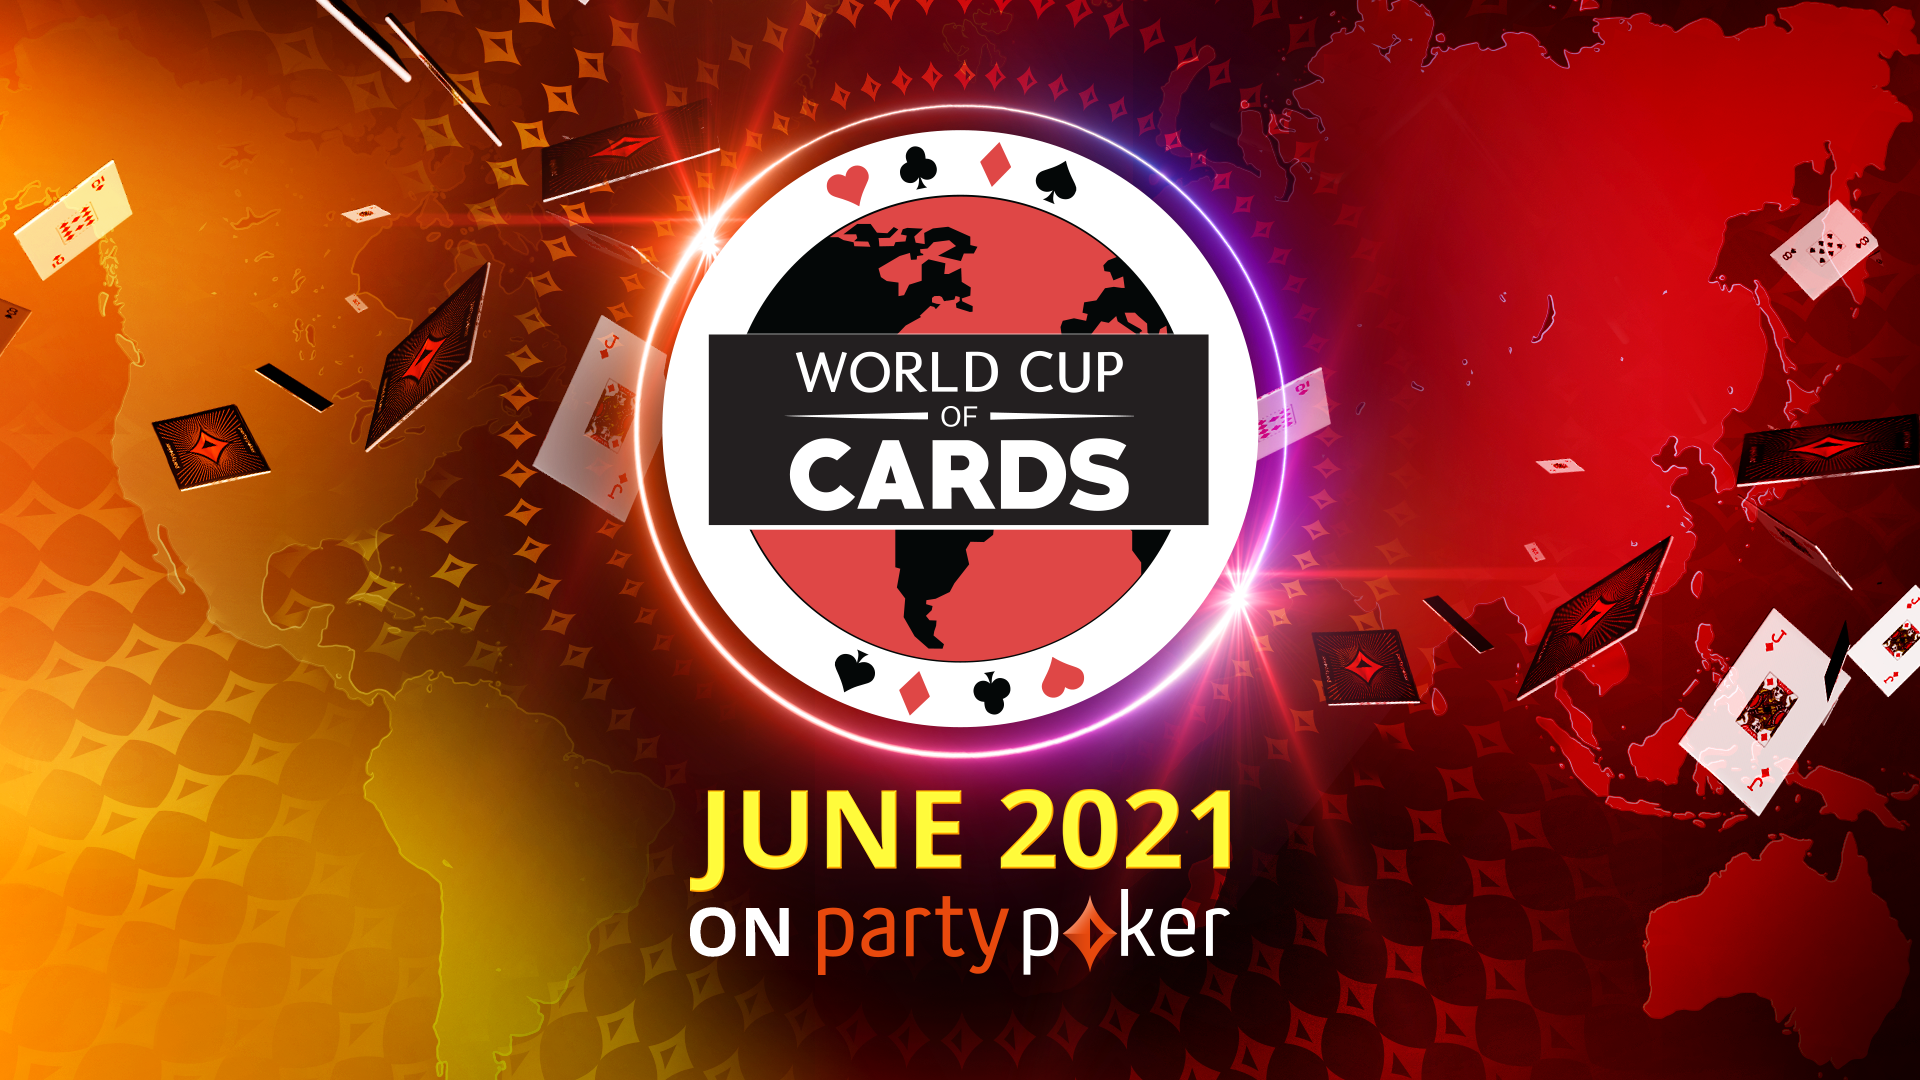 The World Cup of Cards is coming to partypoker!